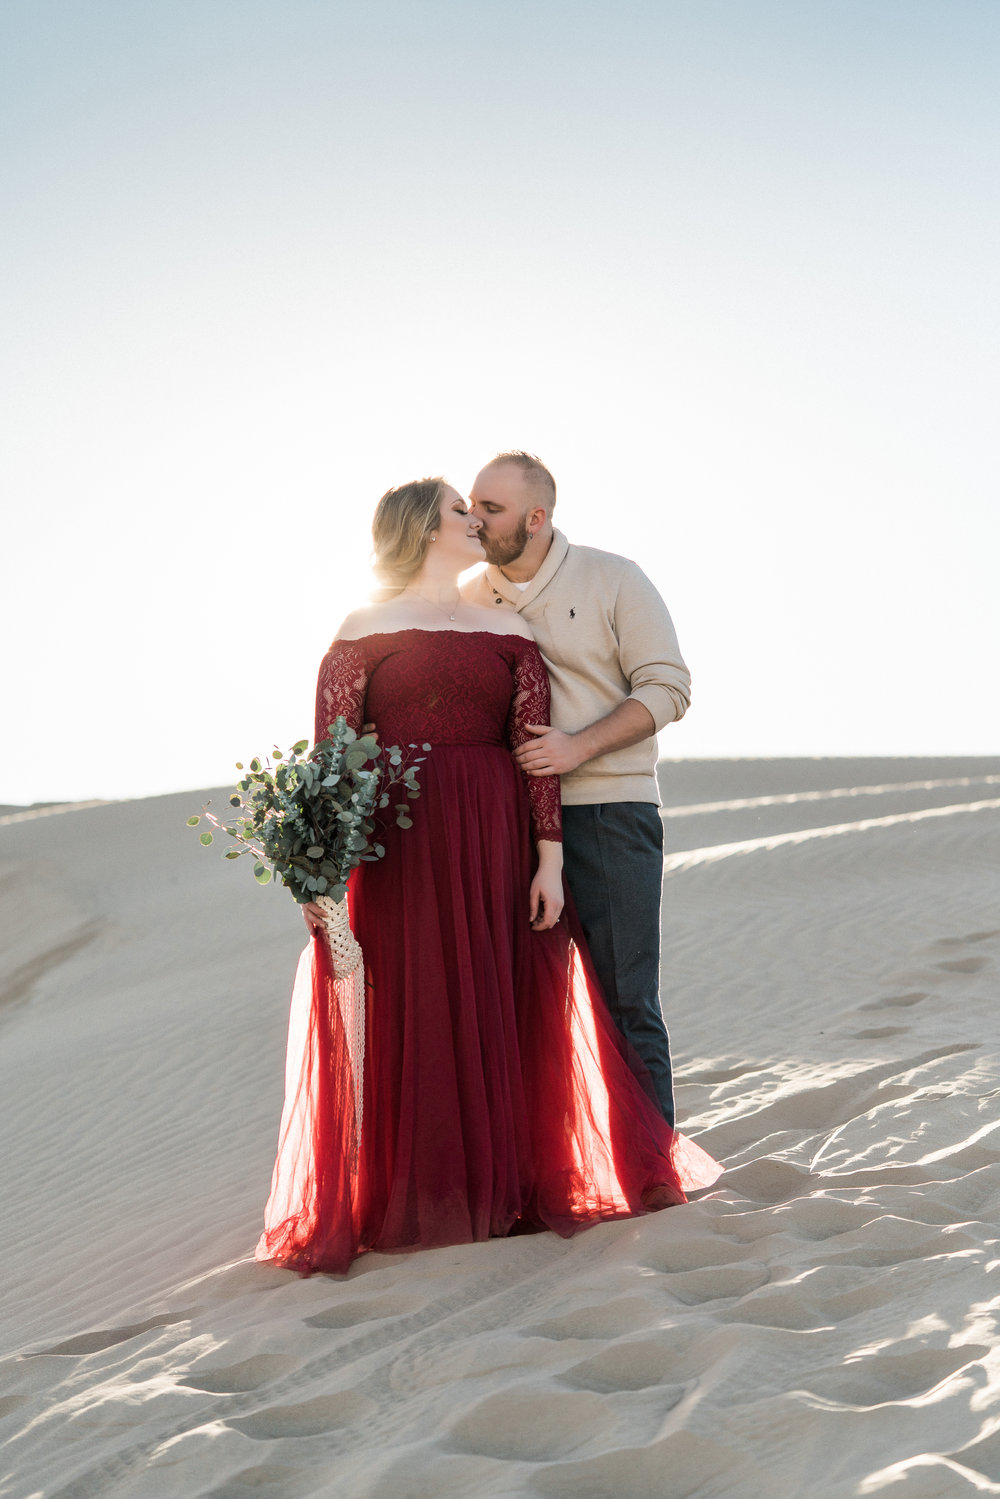 NewMexico-Sand-Dunes-Engagement-Carissa-and-Ben-1062.jpg